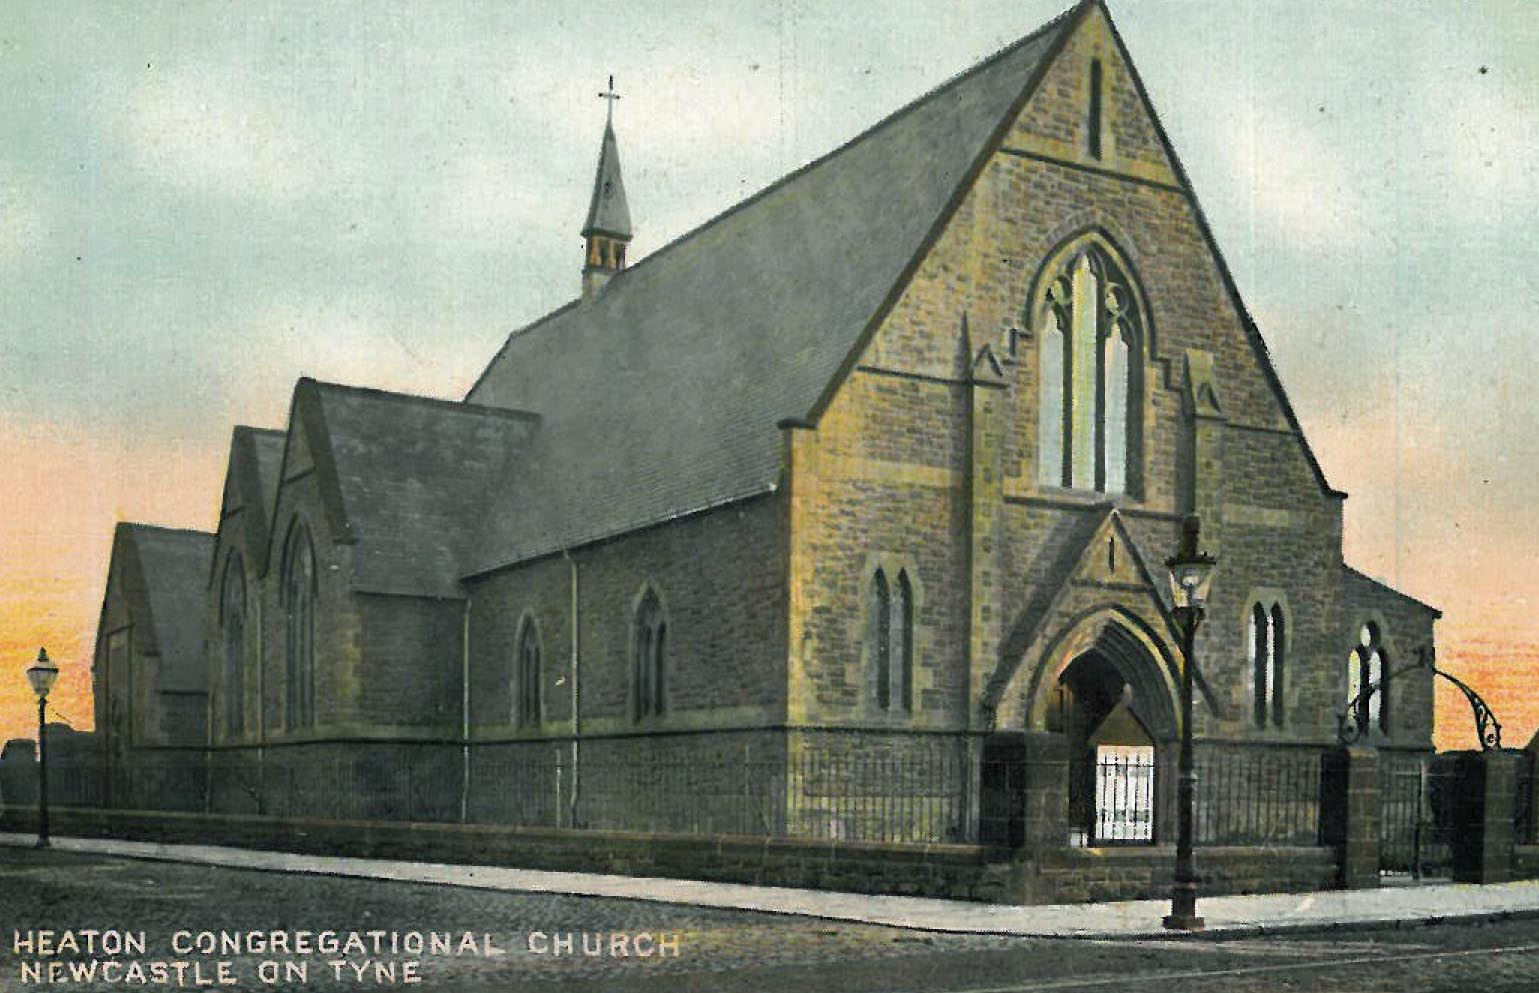 HeatonRoadCongregationalChurchresized